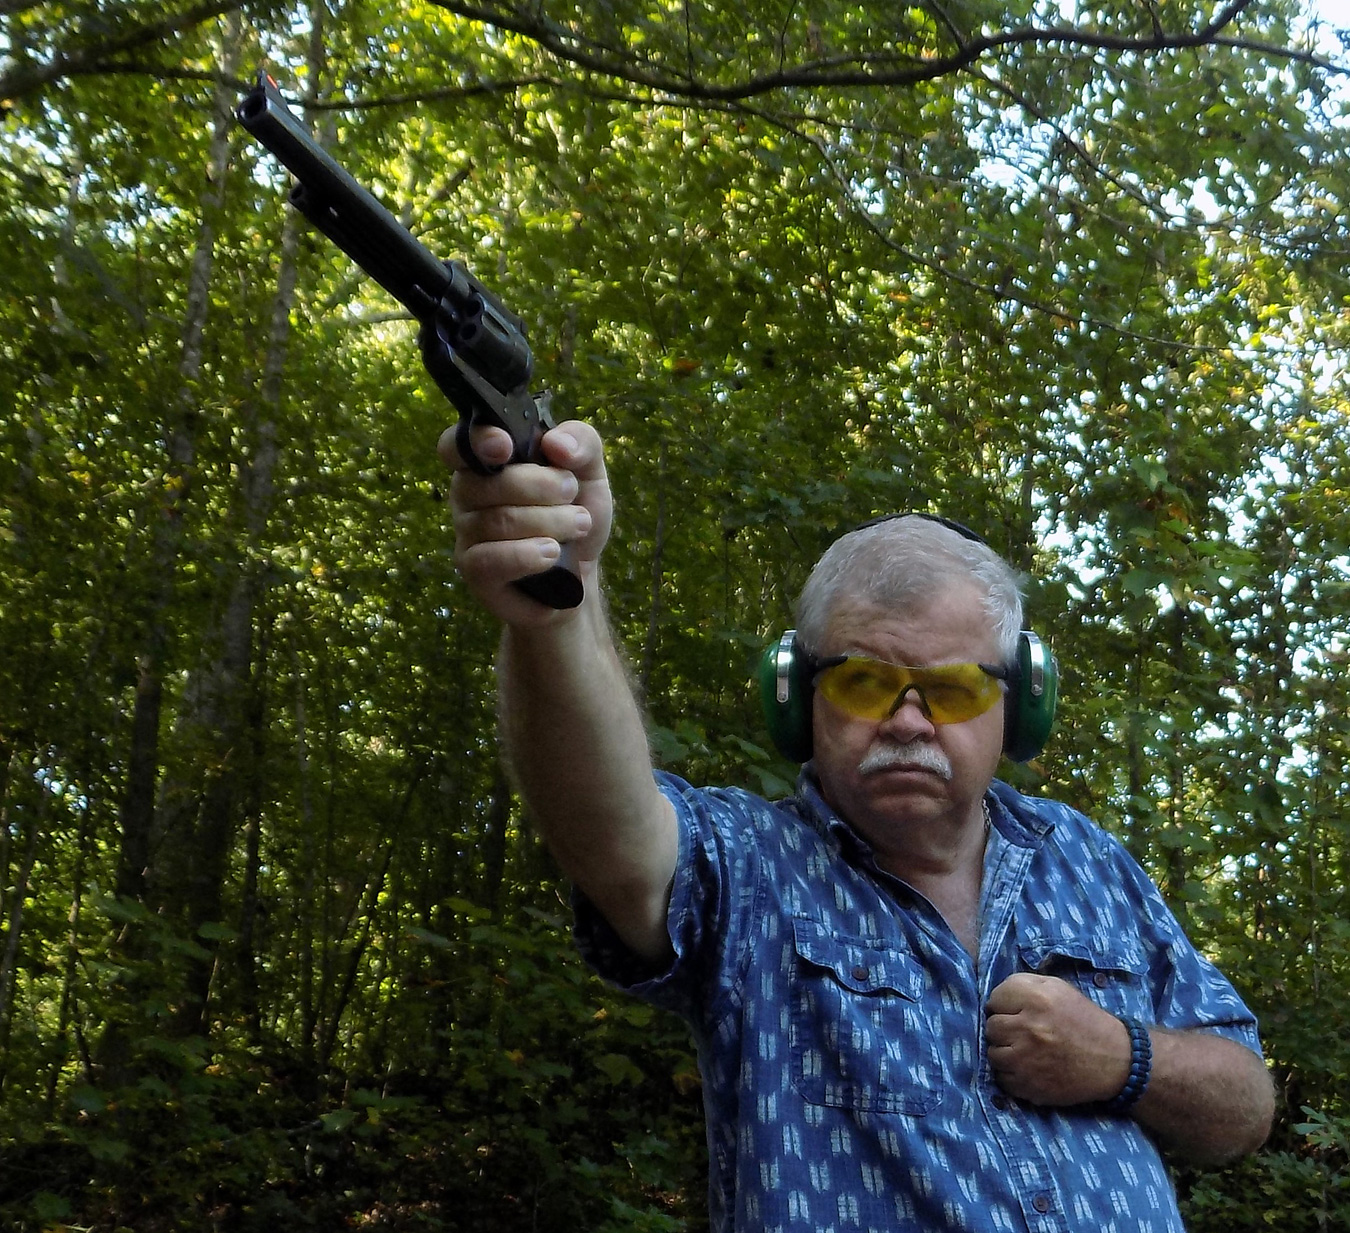 Bob Campbell shooting a .41 magnum revolver with a one-handed grip